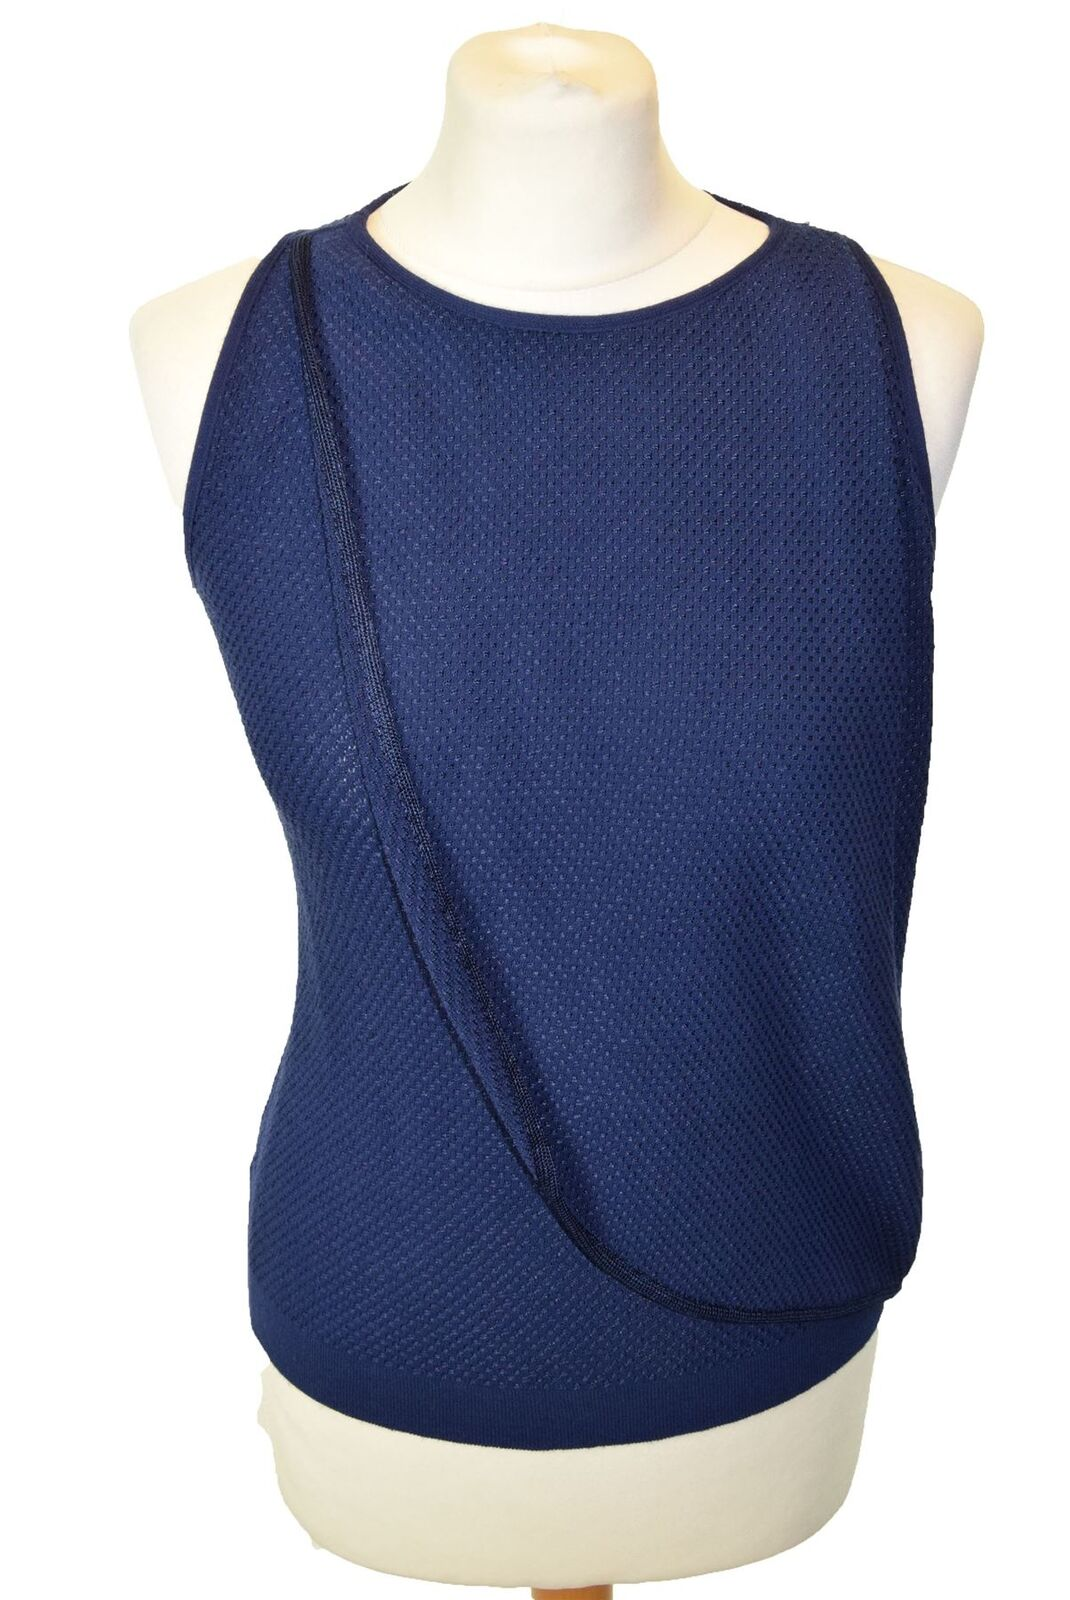 EMPORIO ARMANI bluee Knit Vest Jumper, US 2